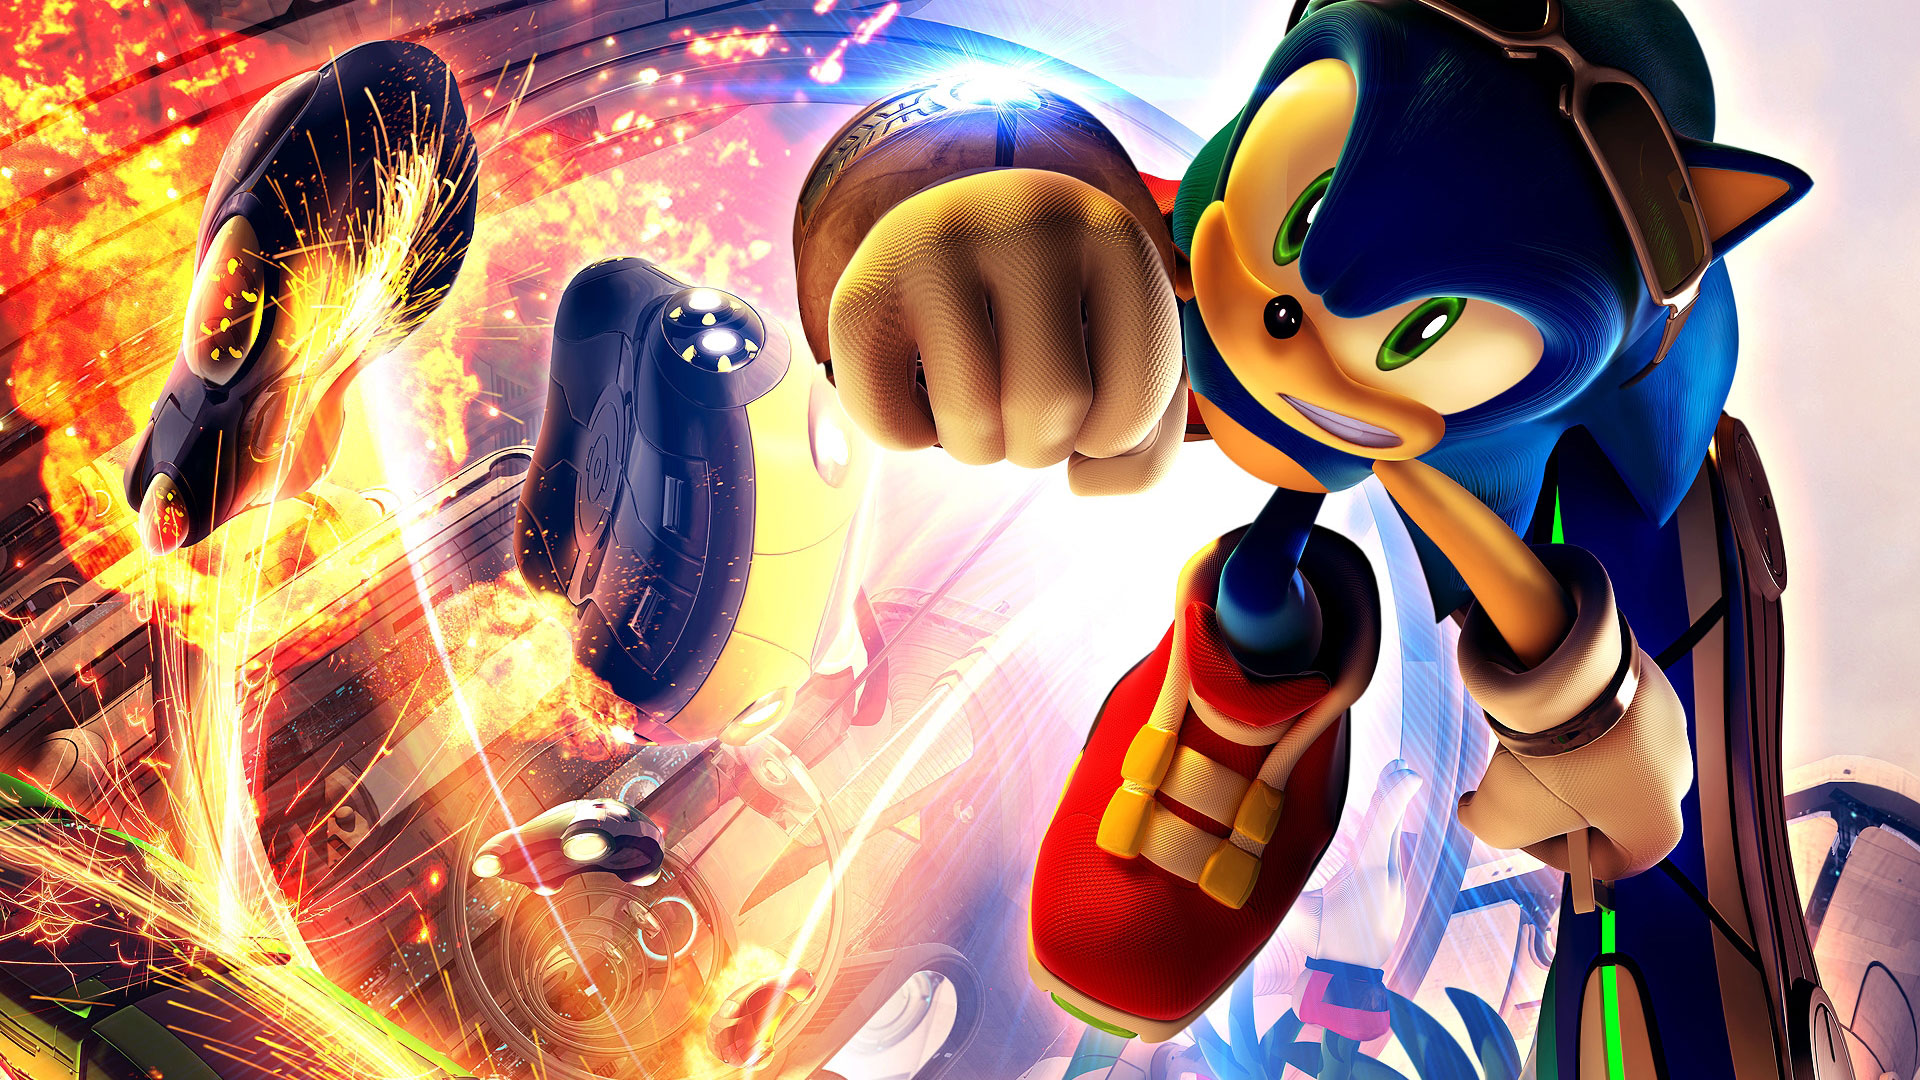 Sonic Riders 1080p Game Wallpapers HD Wallpapers 1920x1080